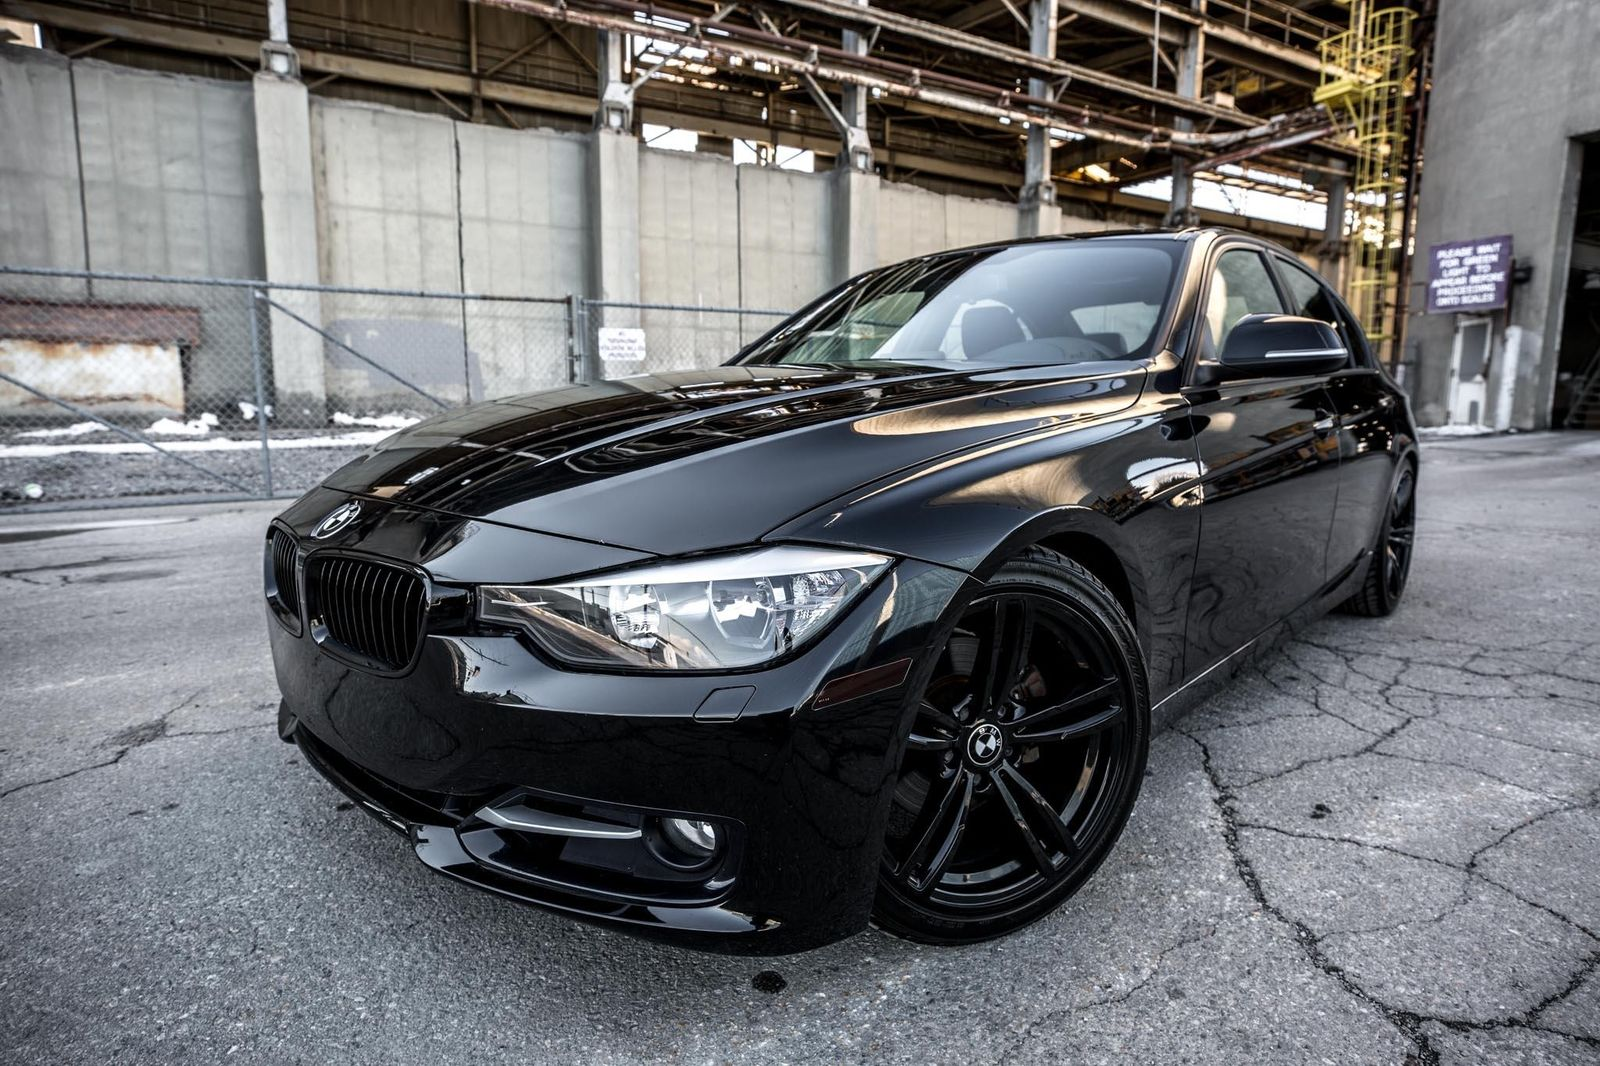 awesome 3 series 328i xdrive 2014 bmw 3 series black sapphire metallic with 36 300 miles. Black Bedroom Furniture Sets. Home Design Ideas